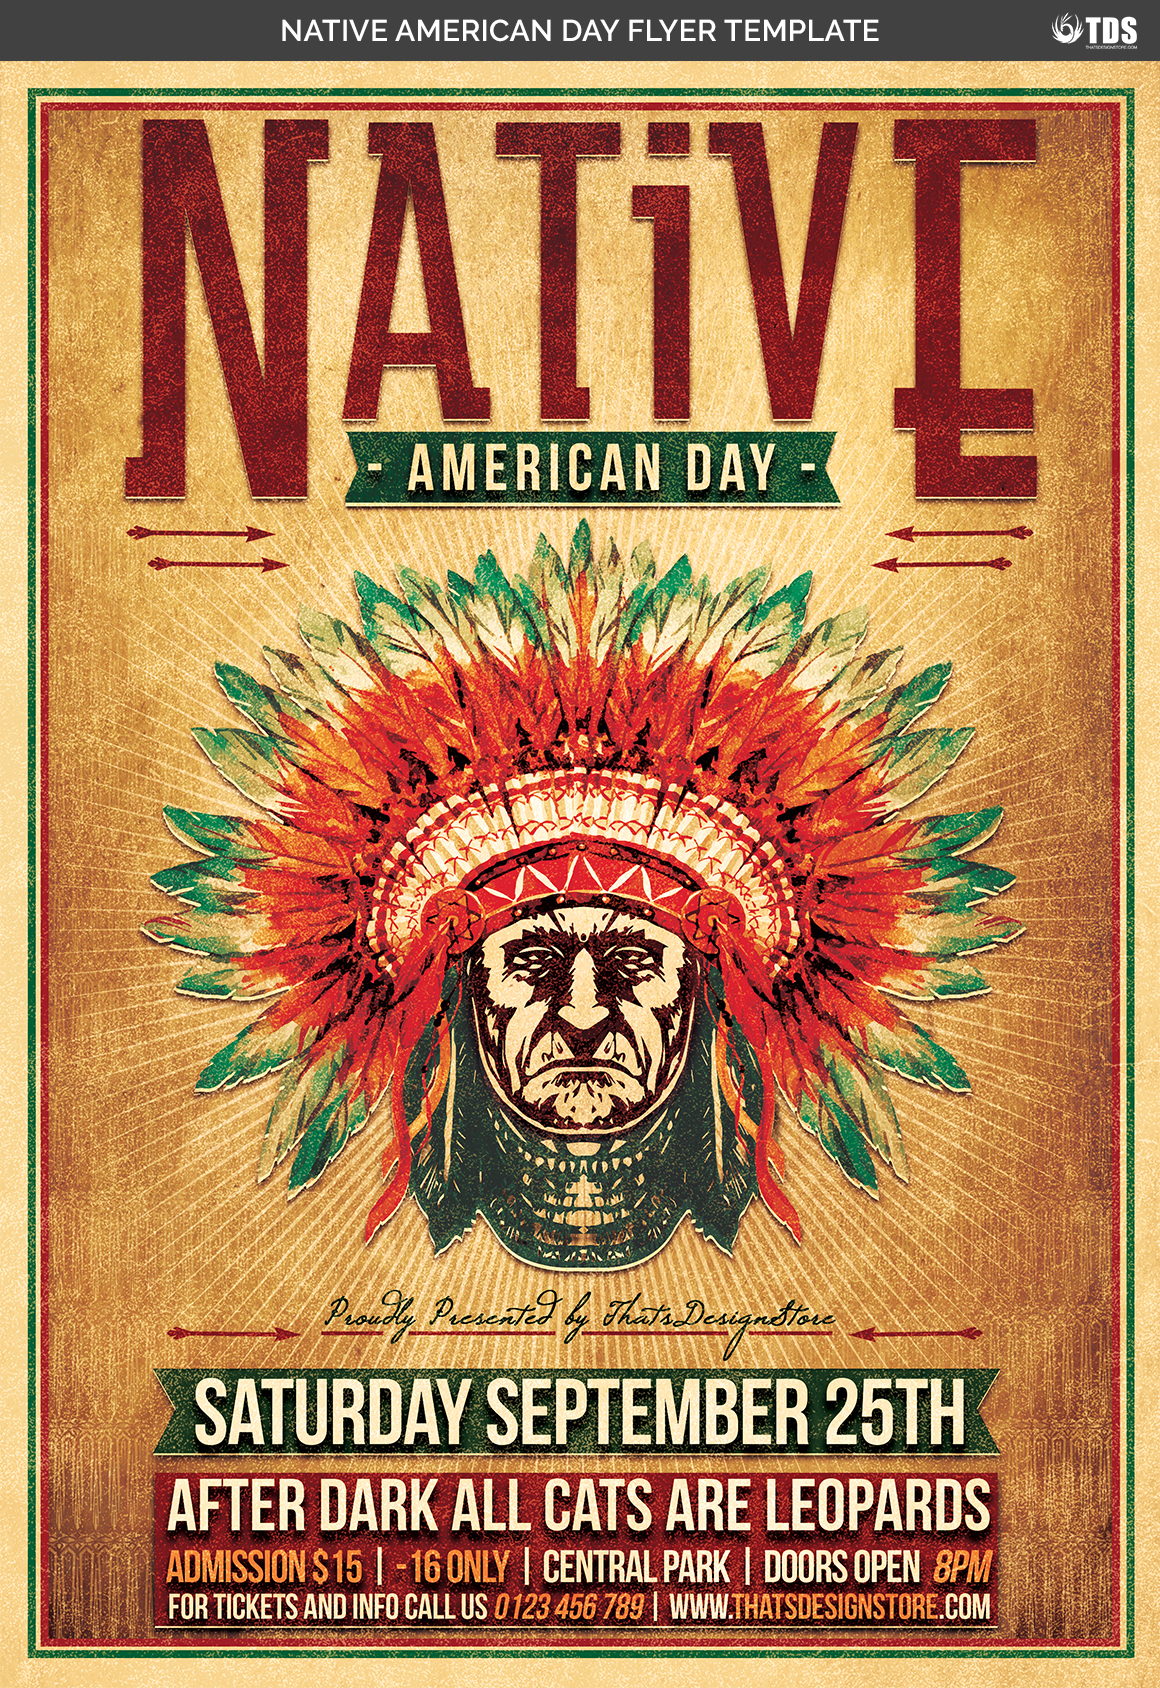 Native American Day Flyer Template example image 4